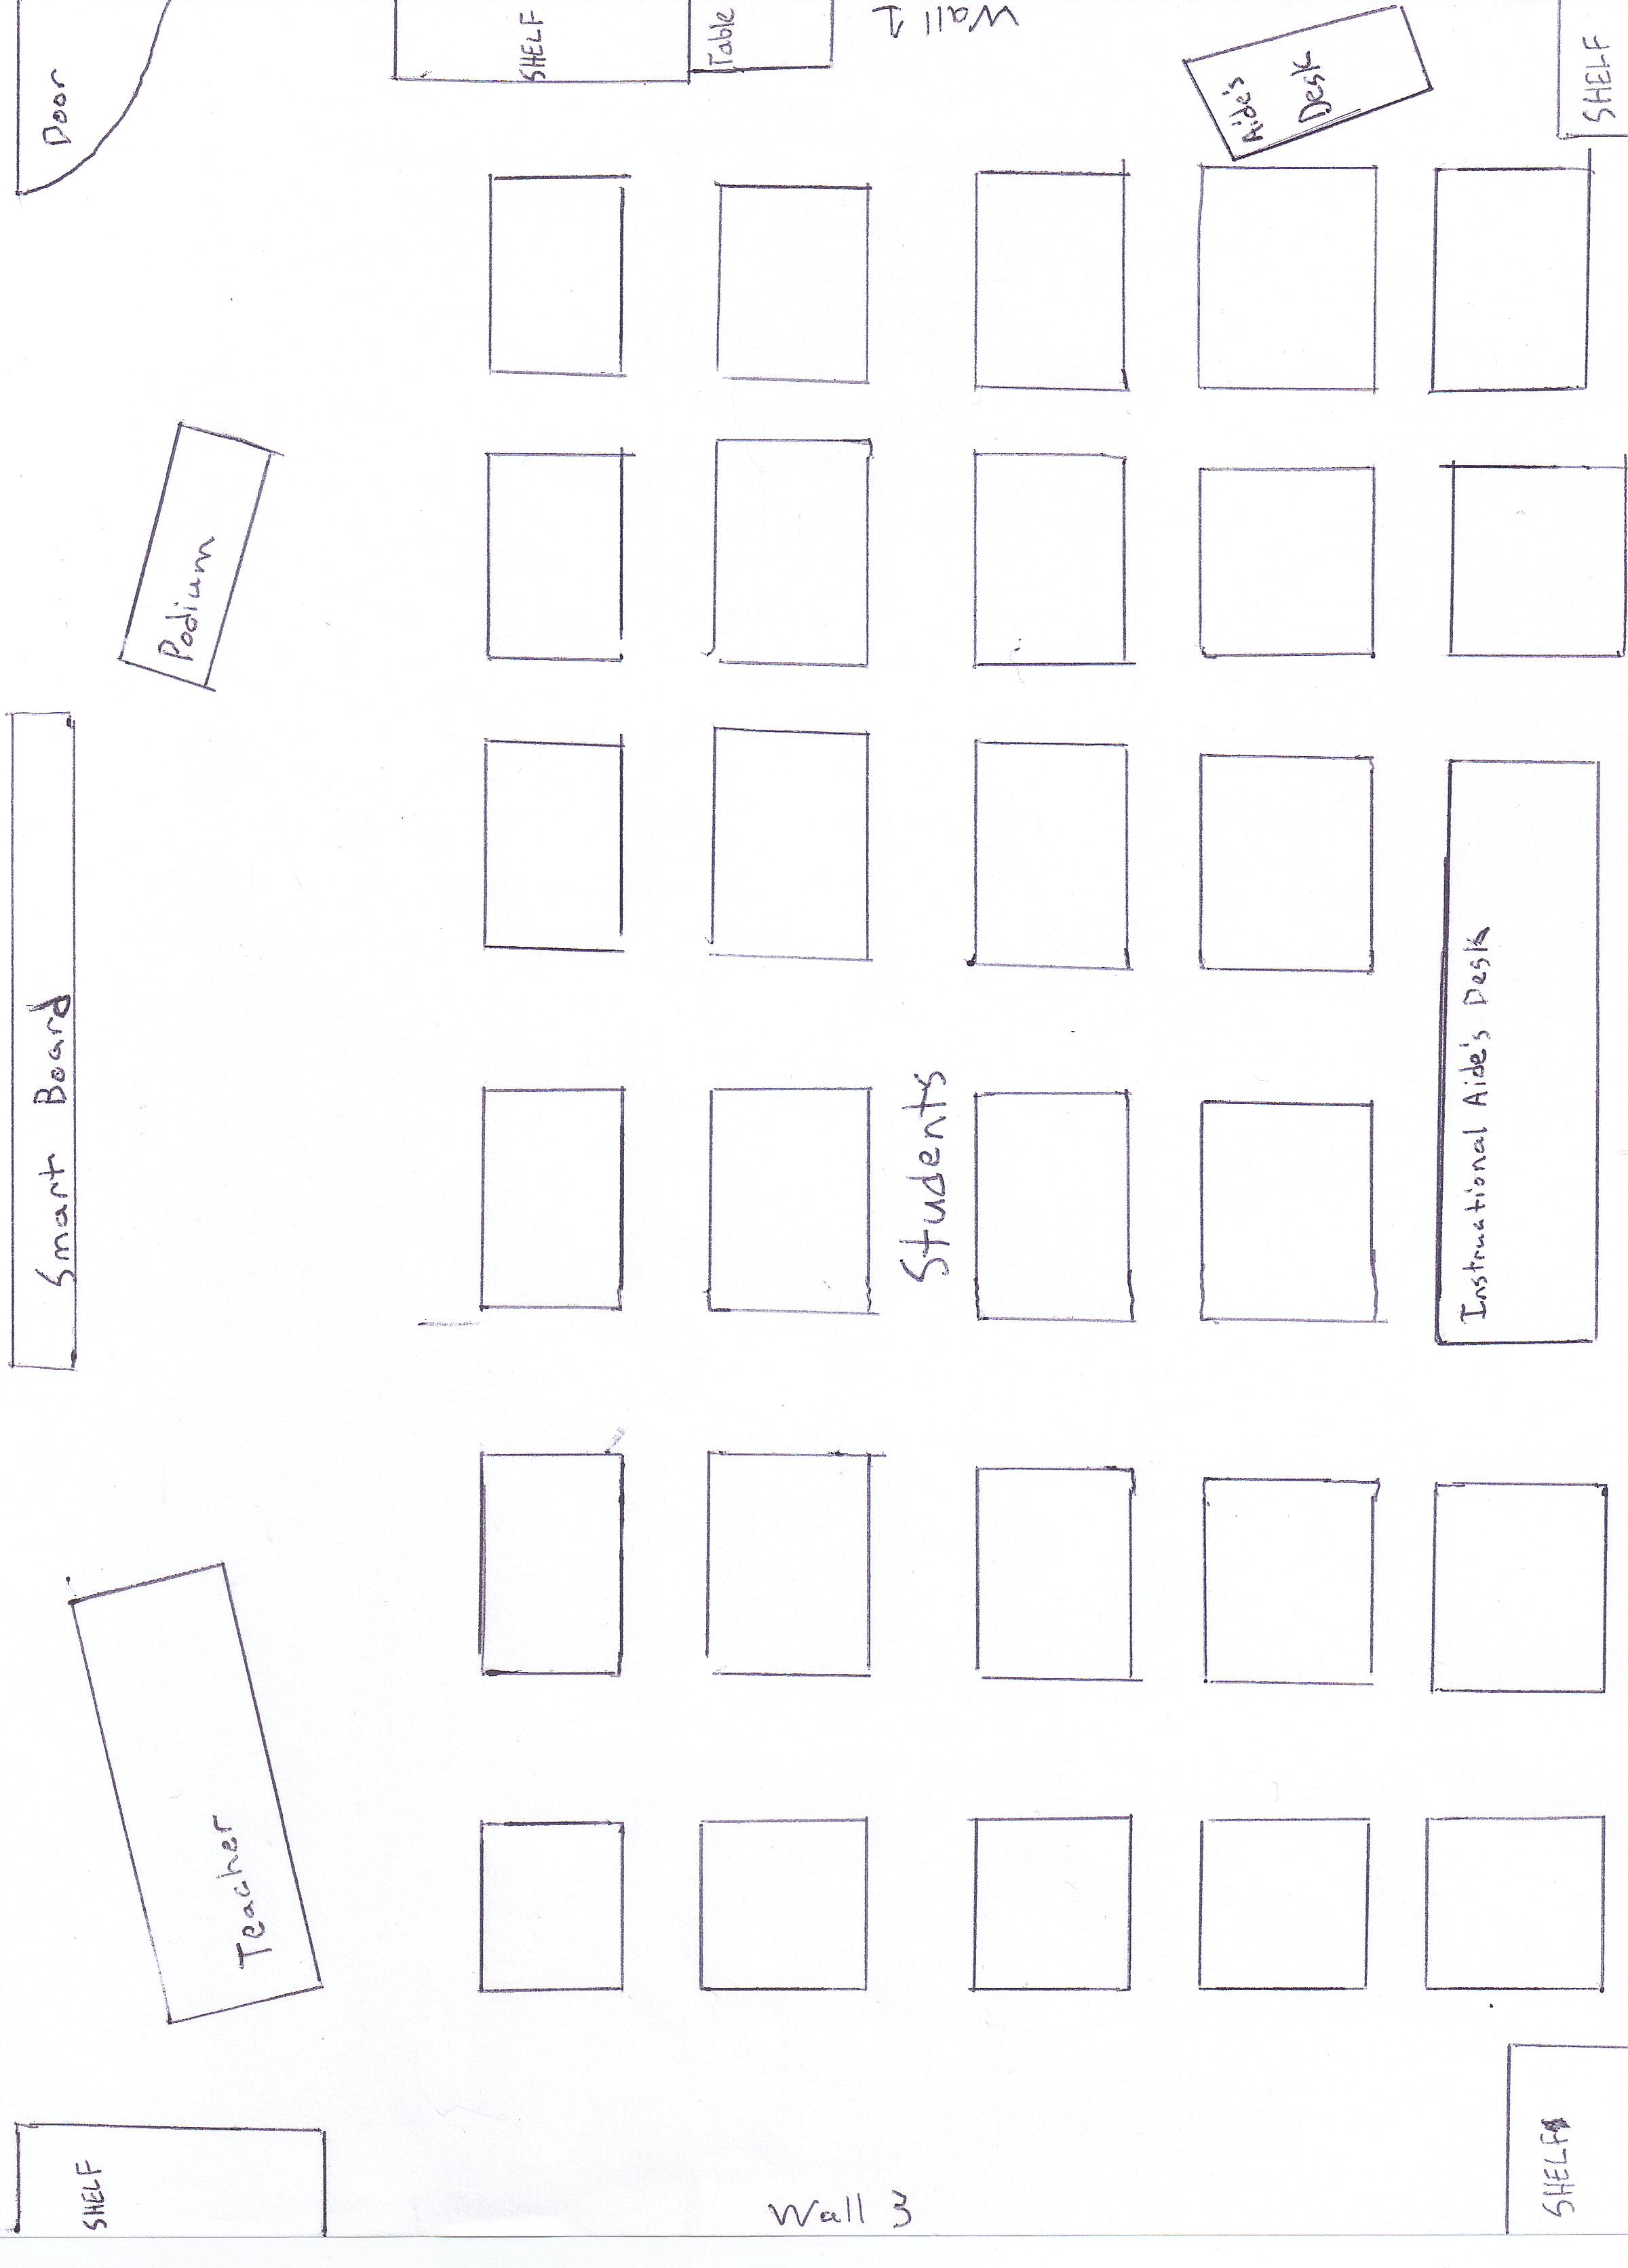 Classroom Layout Observations